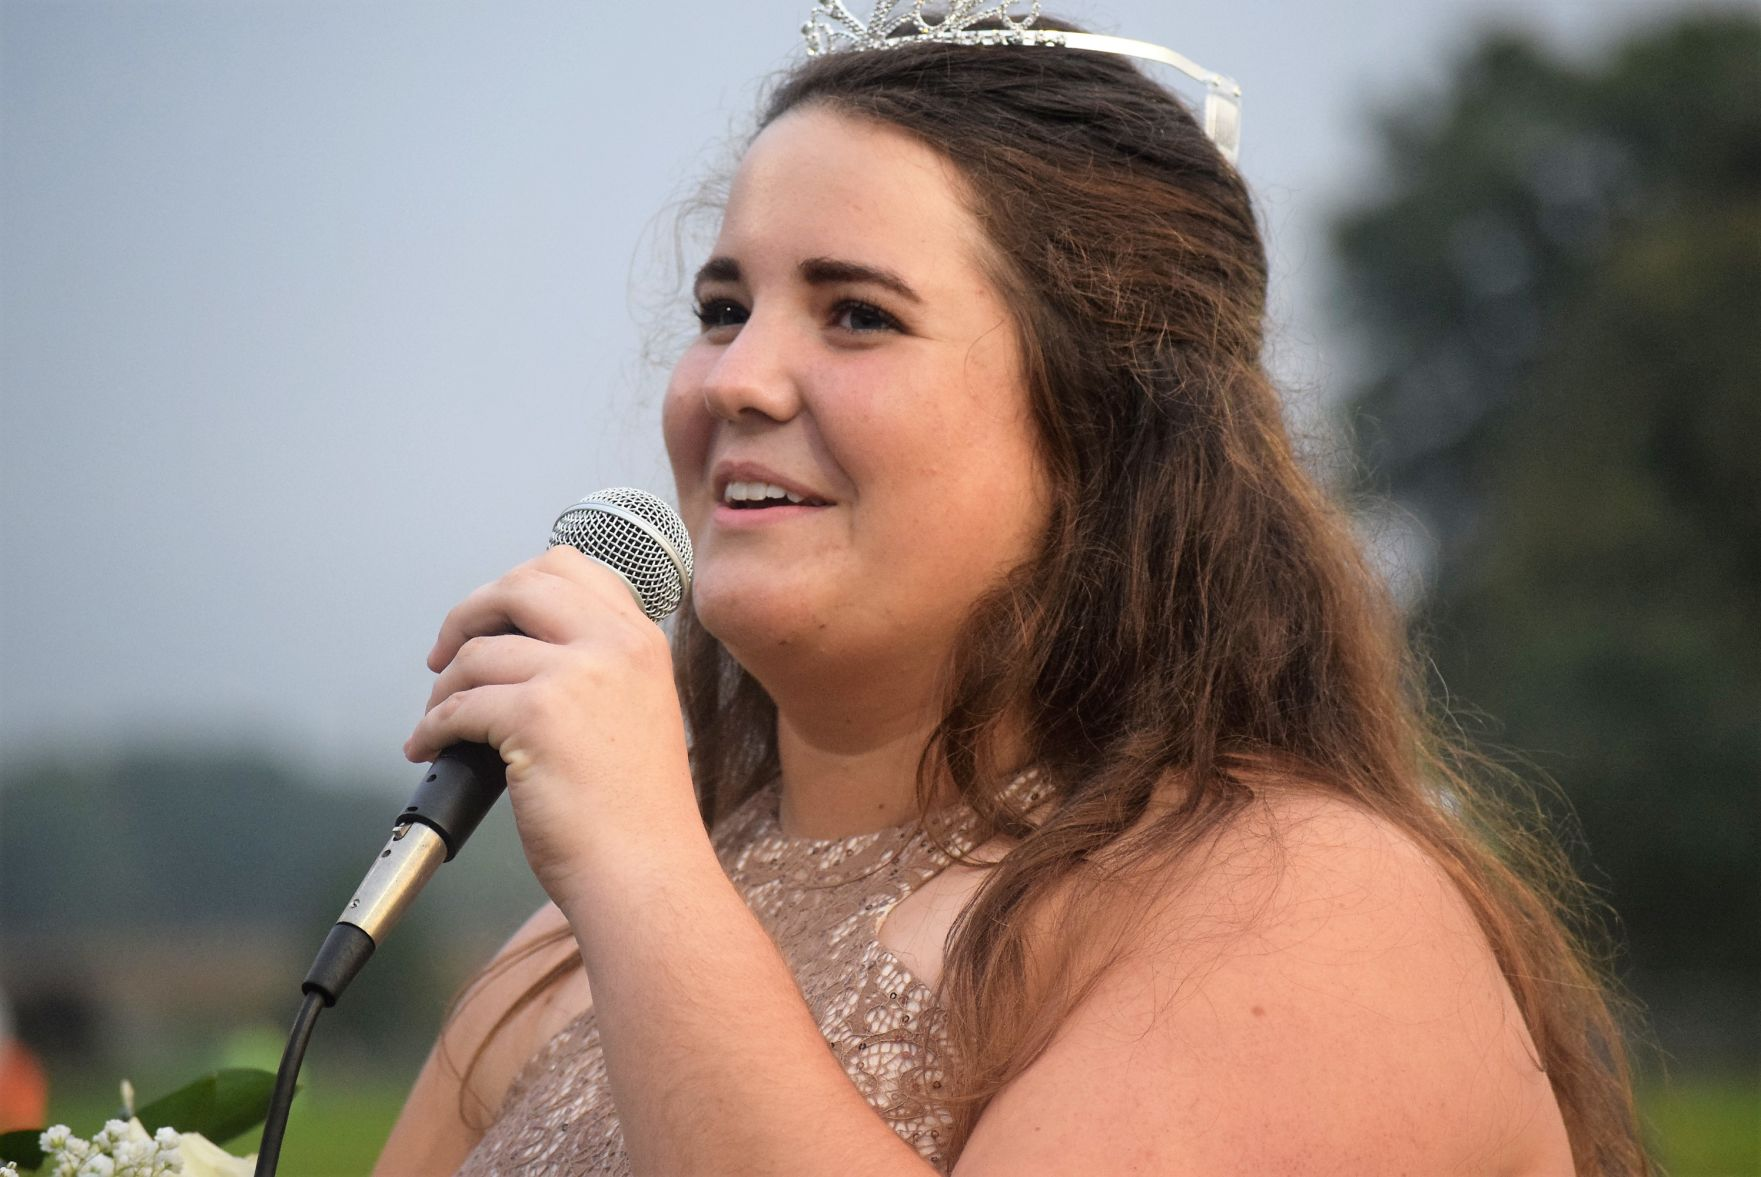 GALLERY: Clear Fork selects 2018 Homecoming Queen